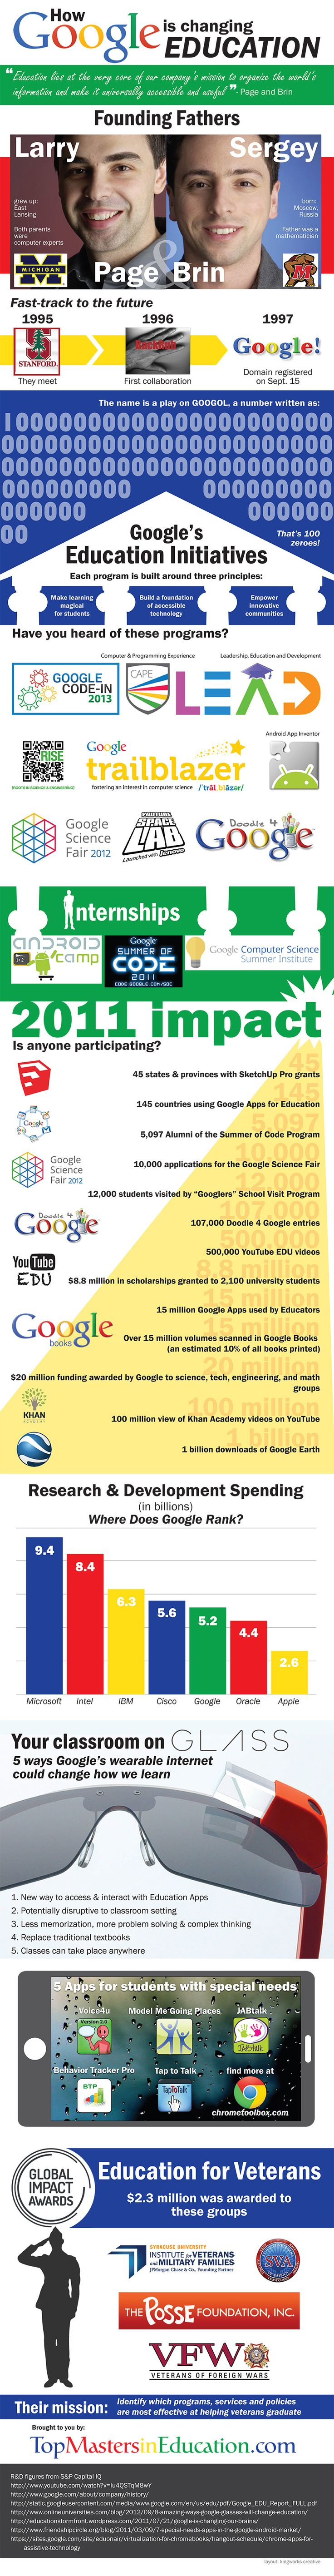 Infographic: How Google is Changing Education